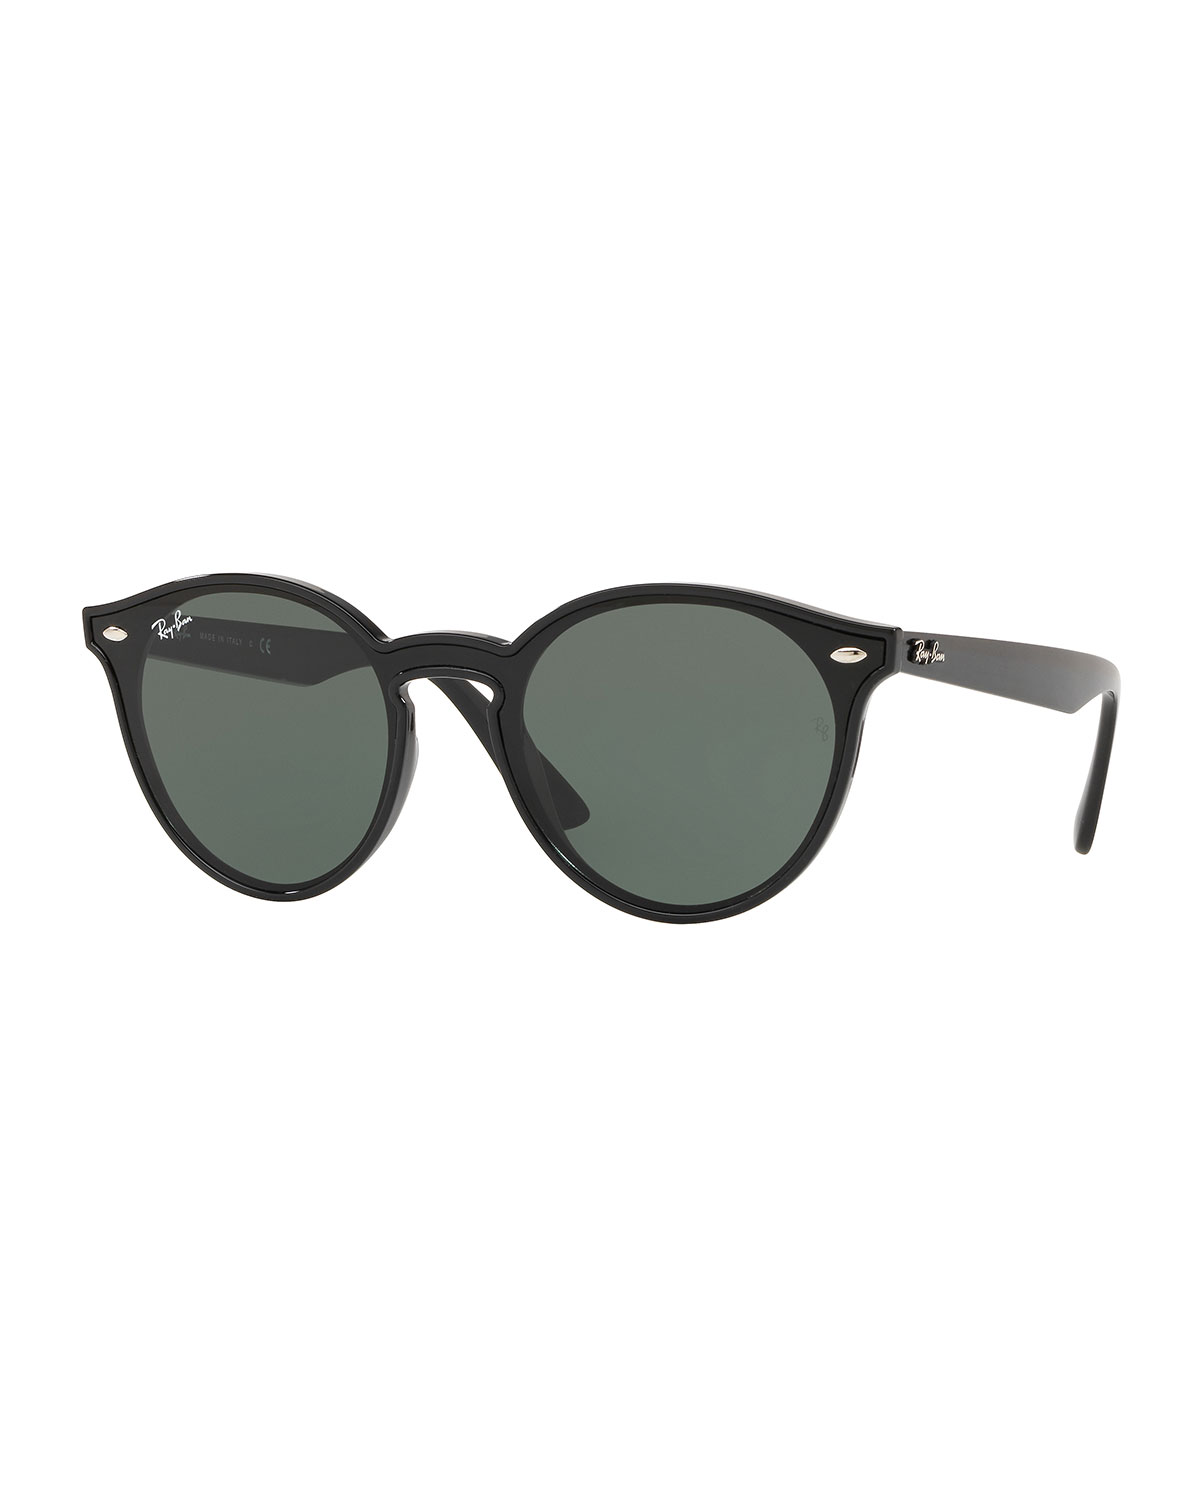 76e21b0990530 Ray-Ban Men s Round Lens-Over-Frame Plastic Sunglasses